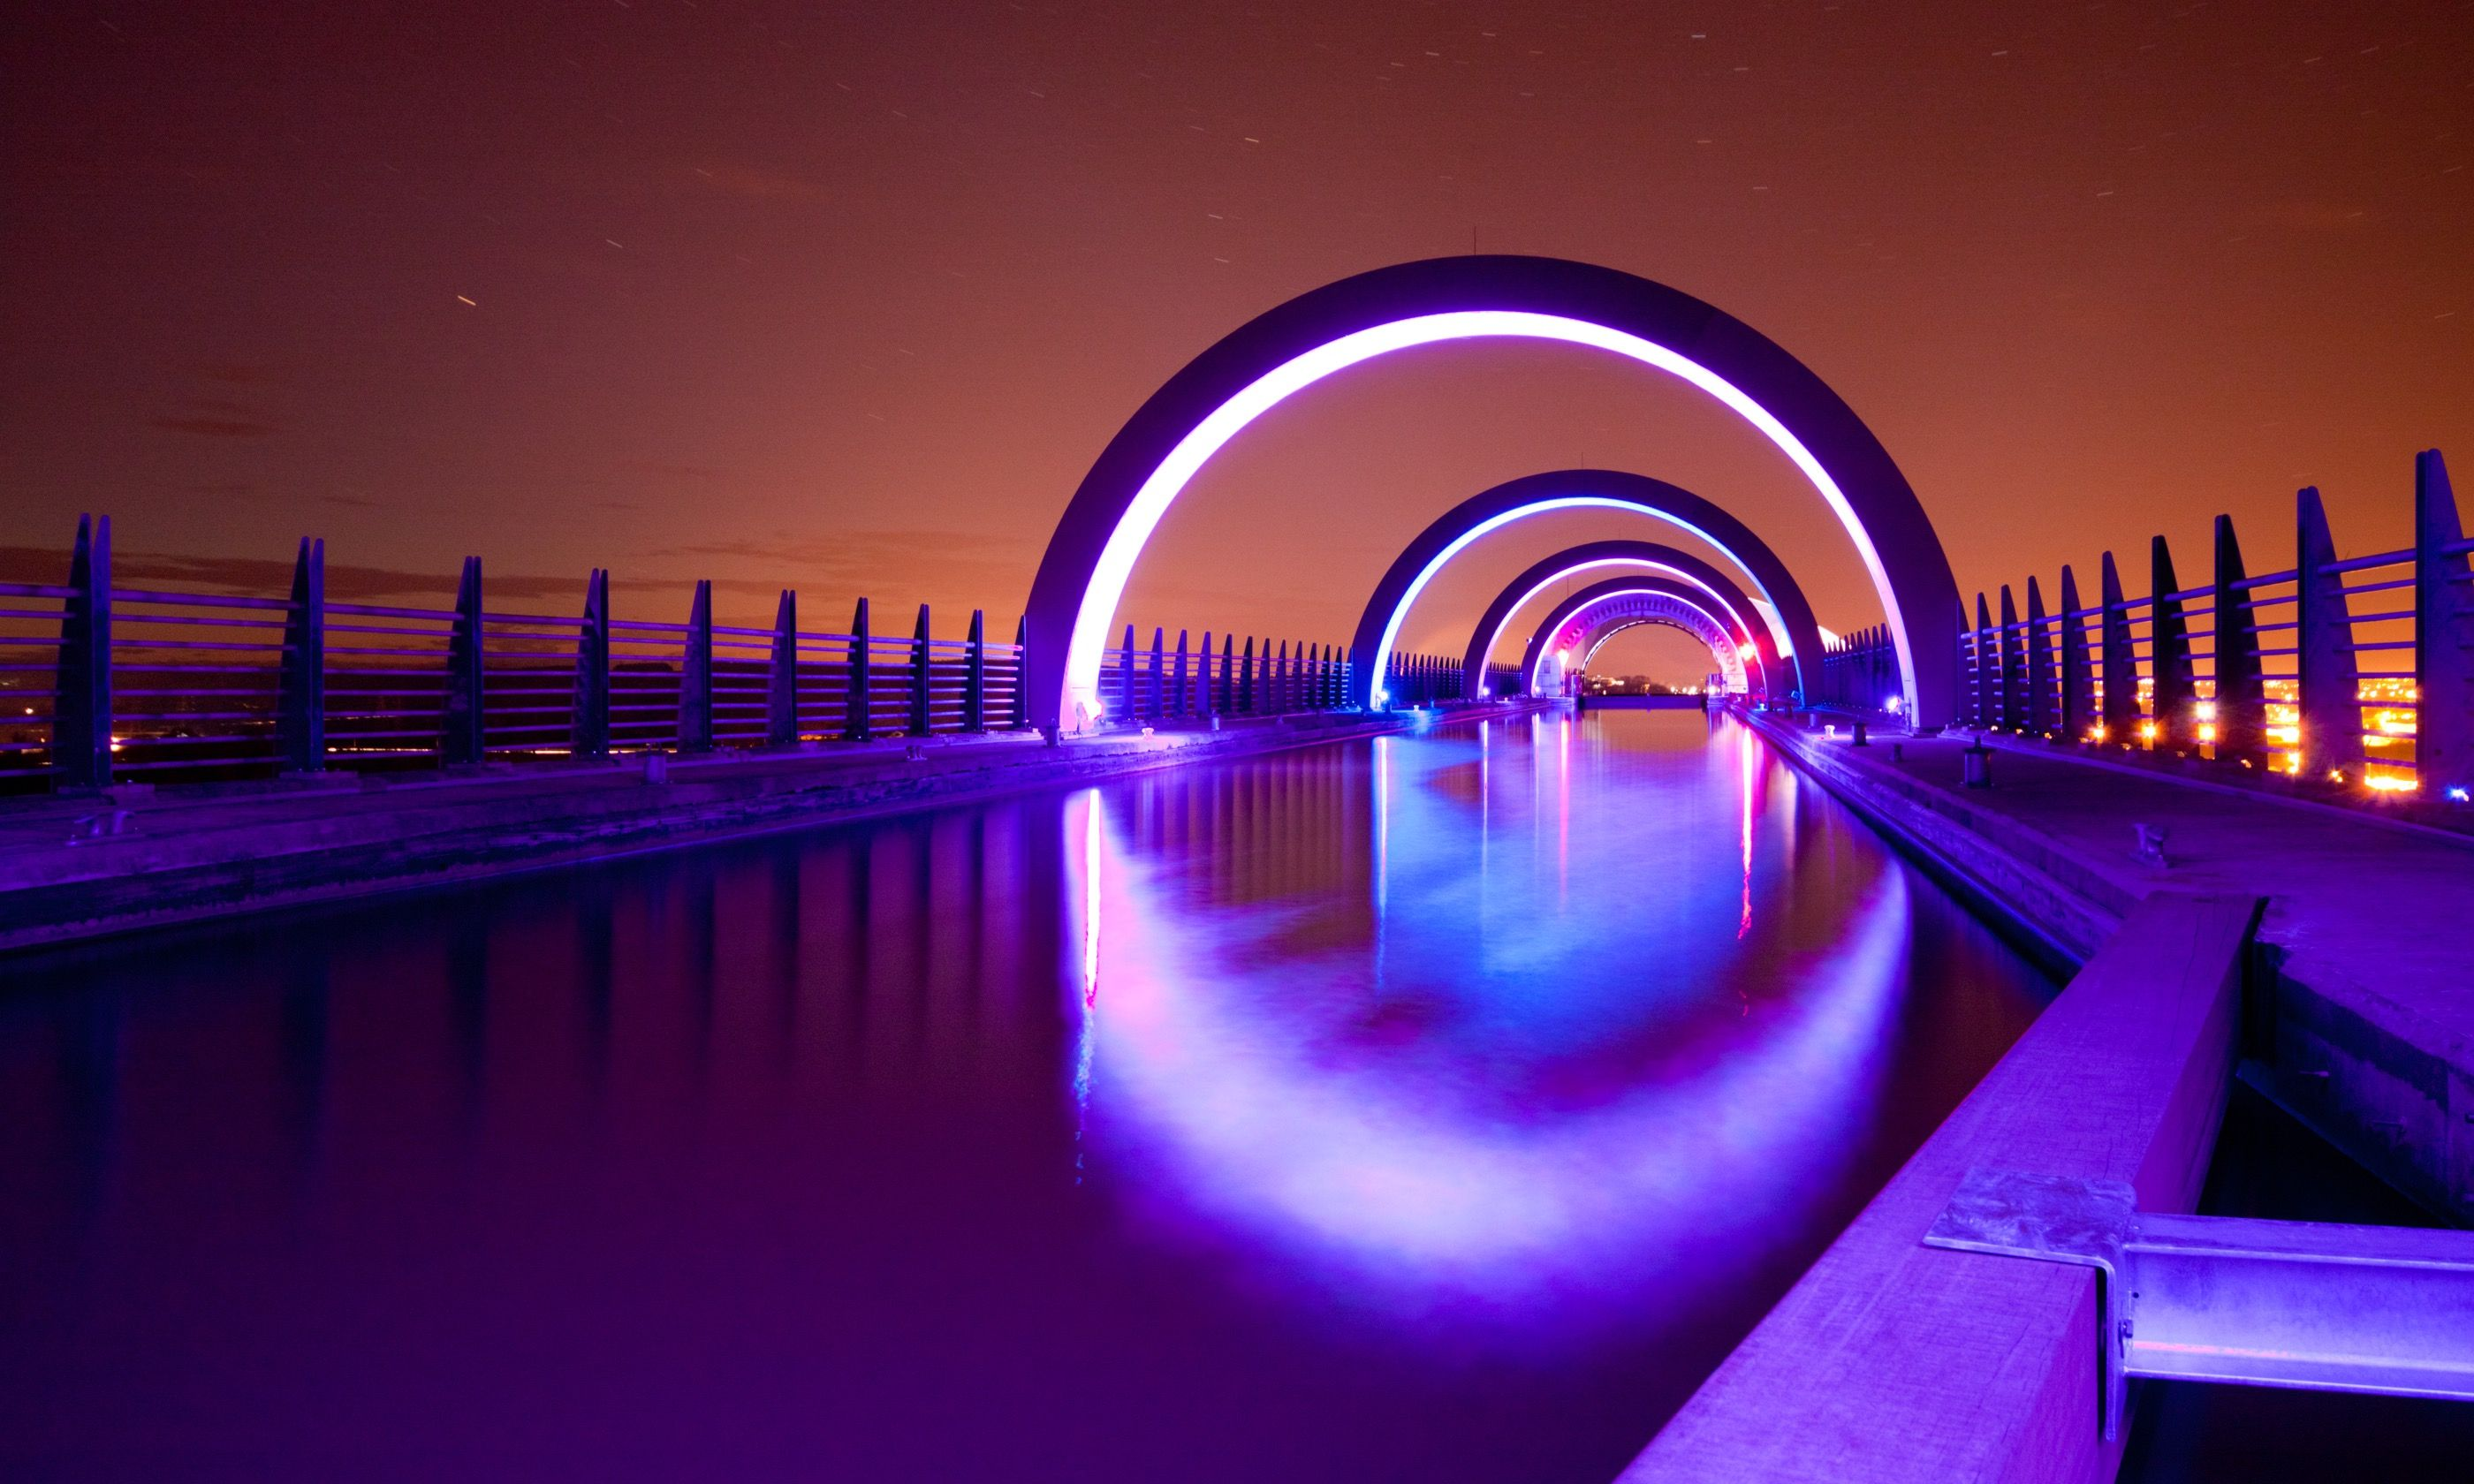 Falkirk Wheel at night (Shutterstock.com